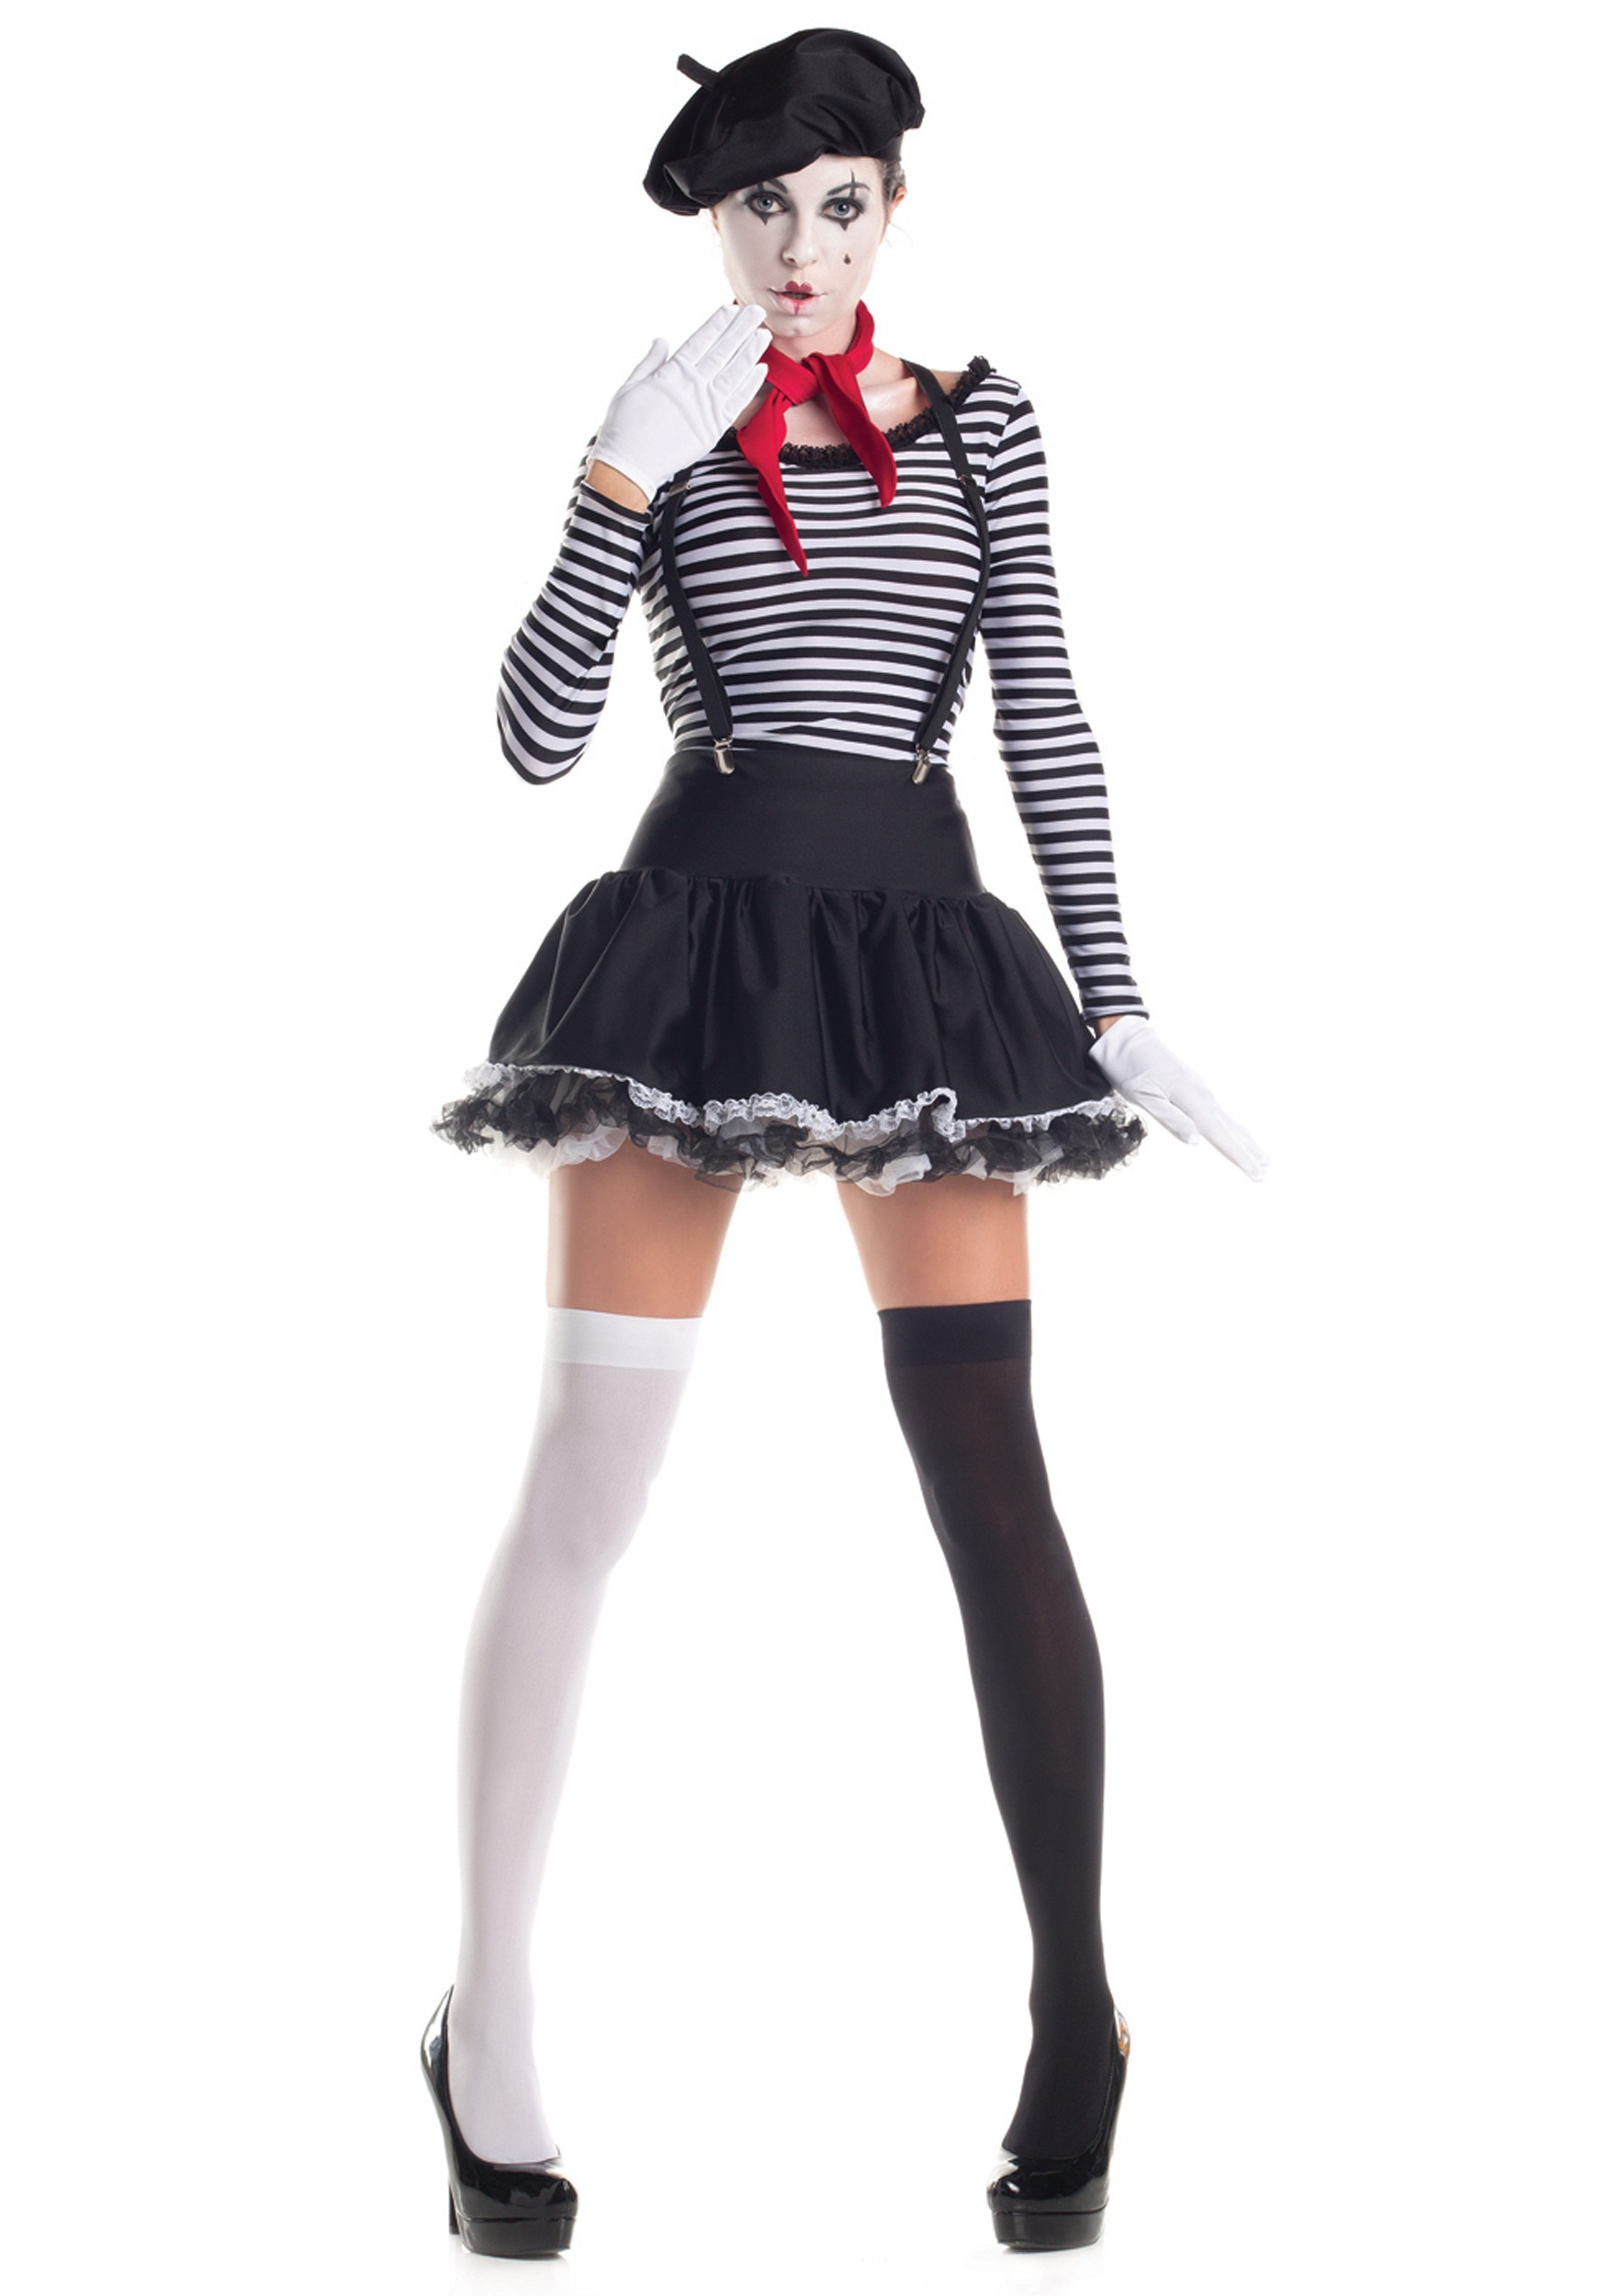 Mesmerizing Mime Costume